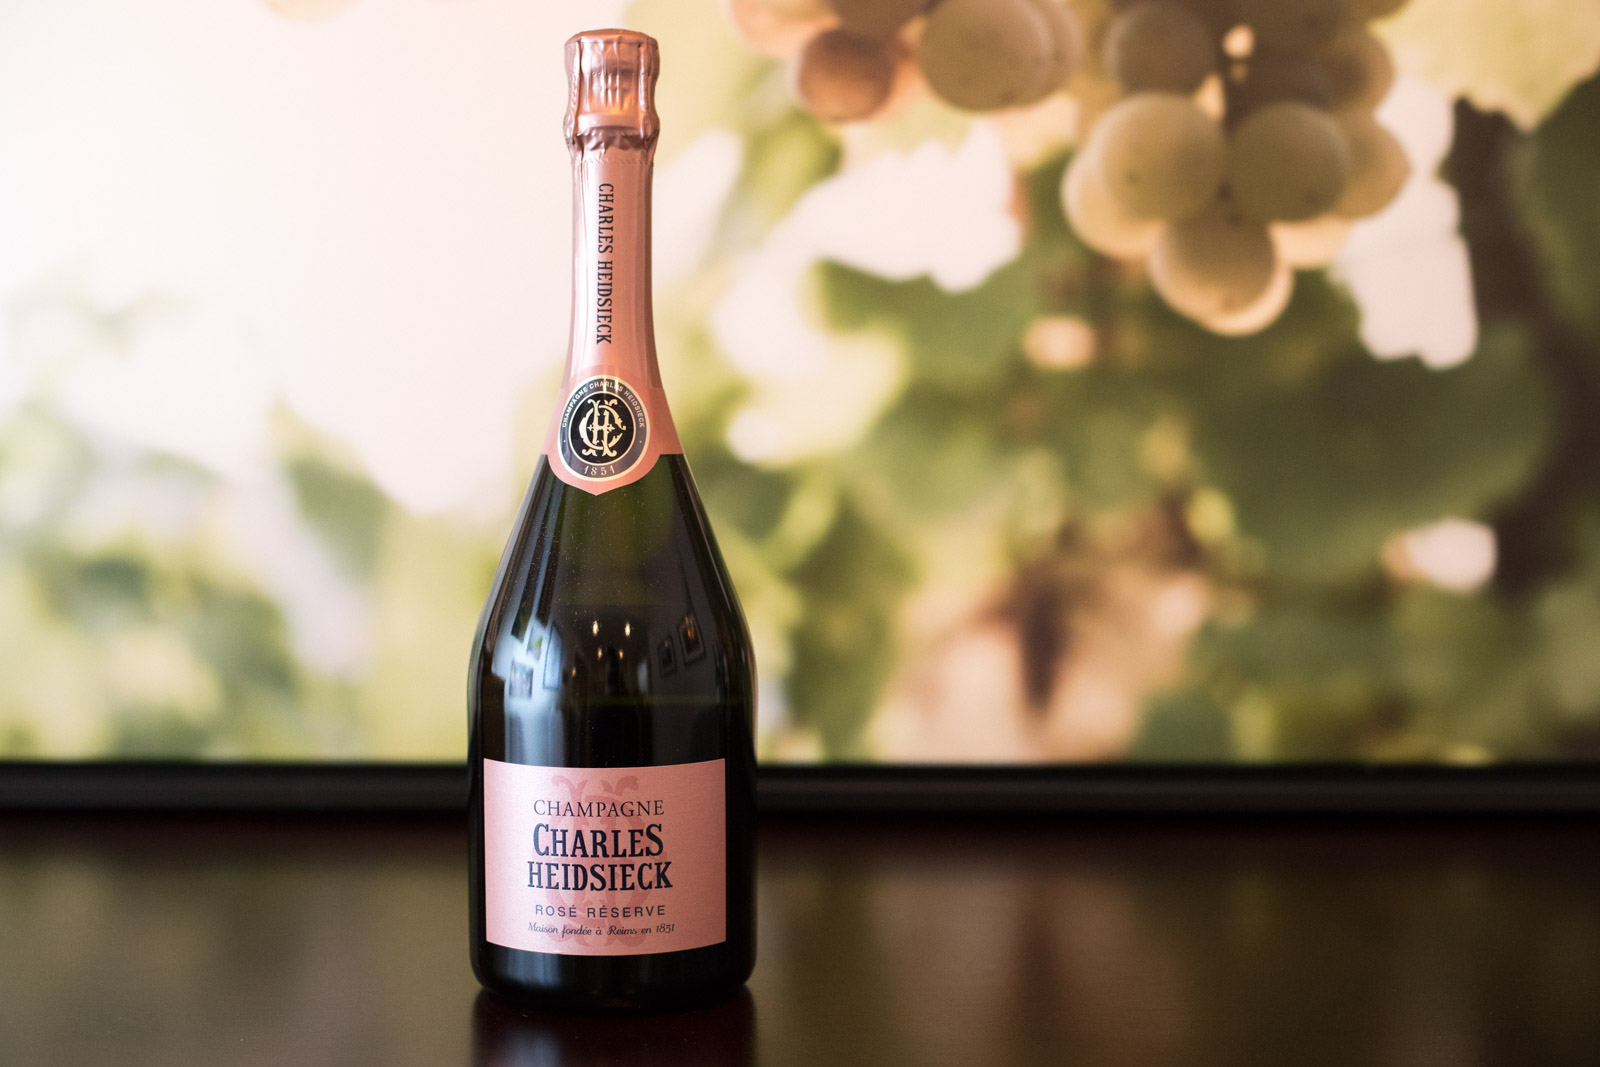 NV Charles Heidsieck Rosé Reserve Champagne ©Kevin Day/Opening a Bottle